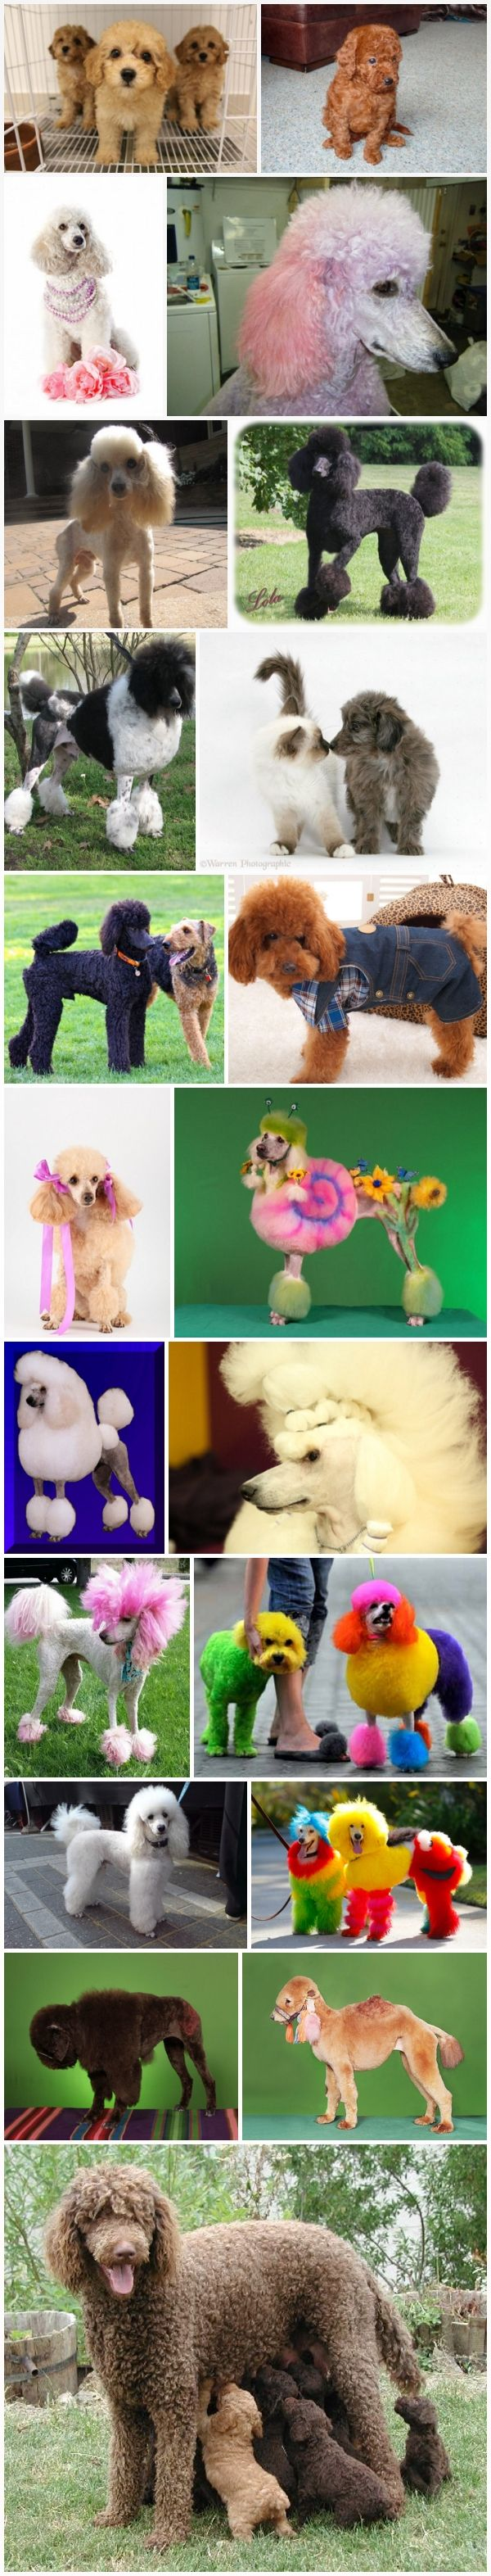 Top 21 Funny and cute poodles